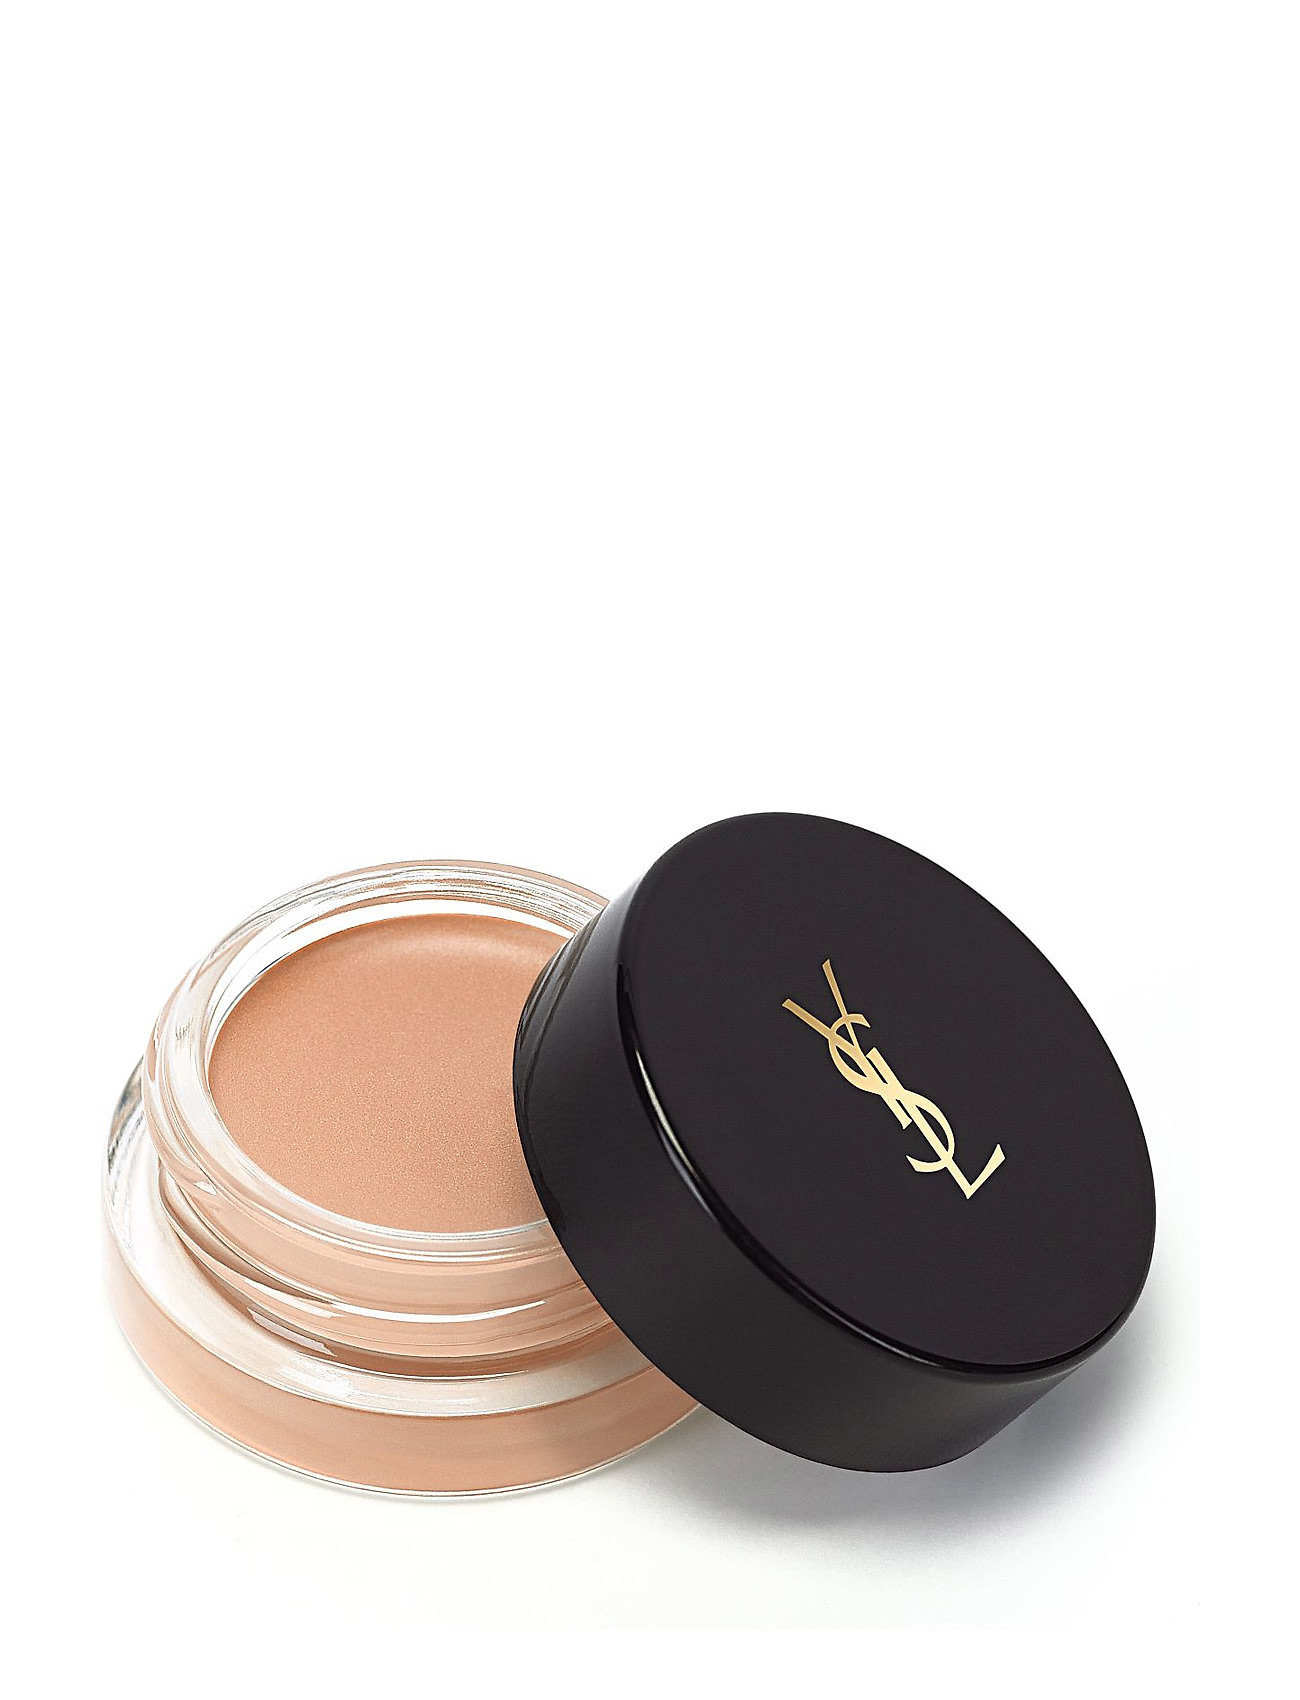 yves saint laurent Couture eye primer 02 på boozt.com dk